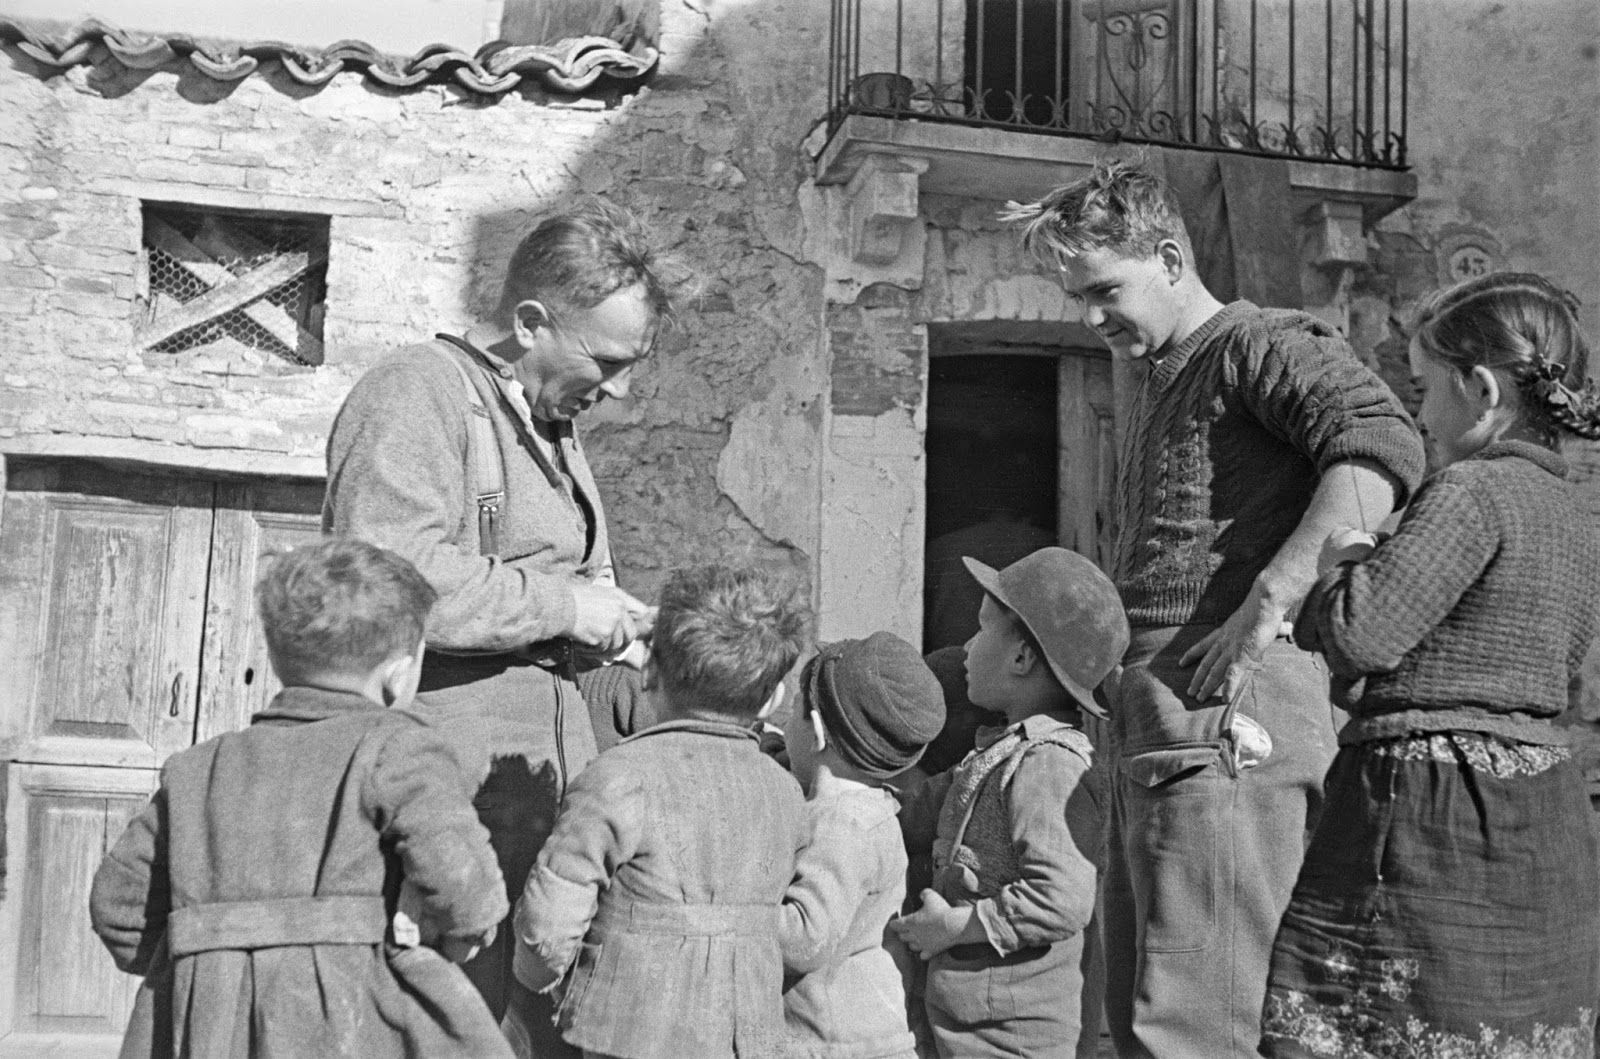 History in Photos: George Frederick Kaye. Men of 2 New Zealand Division fraternizing with children in the village where they are resting after a spell in the front line, near Orsogna, Italy, 6 January 1944